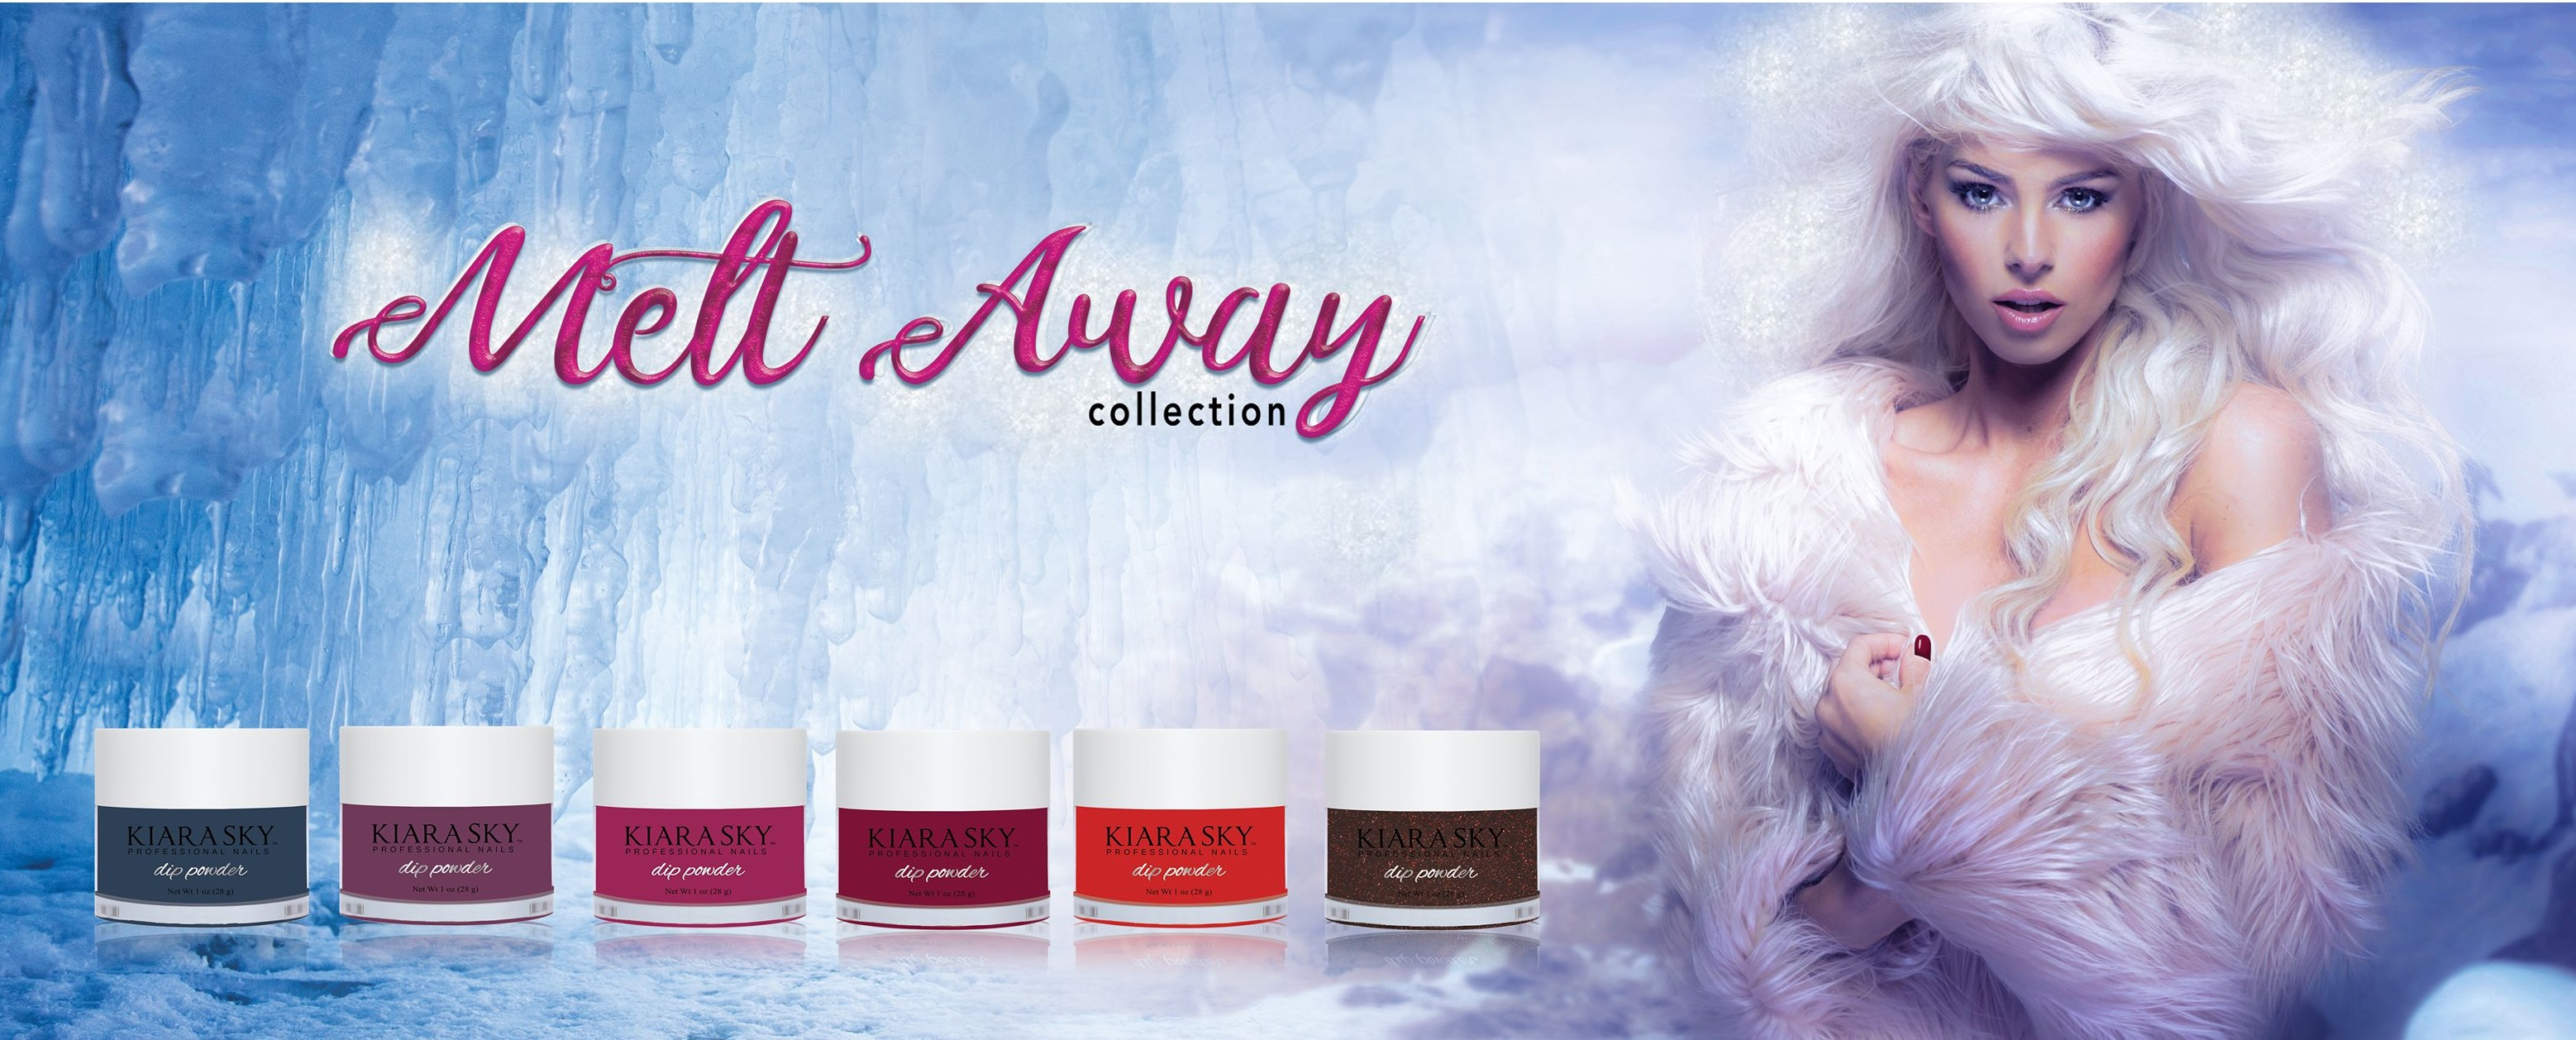 KS MELT AWAY COLLECTION